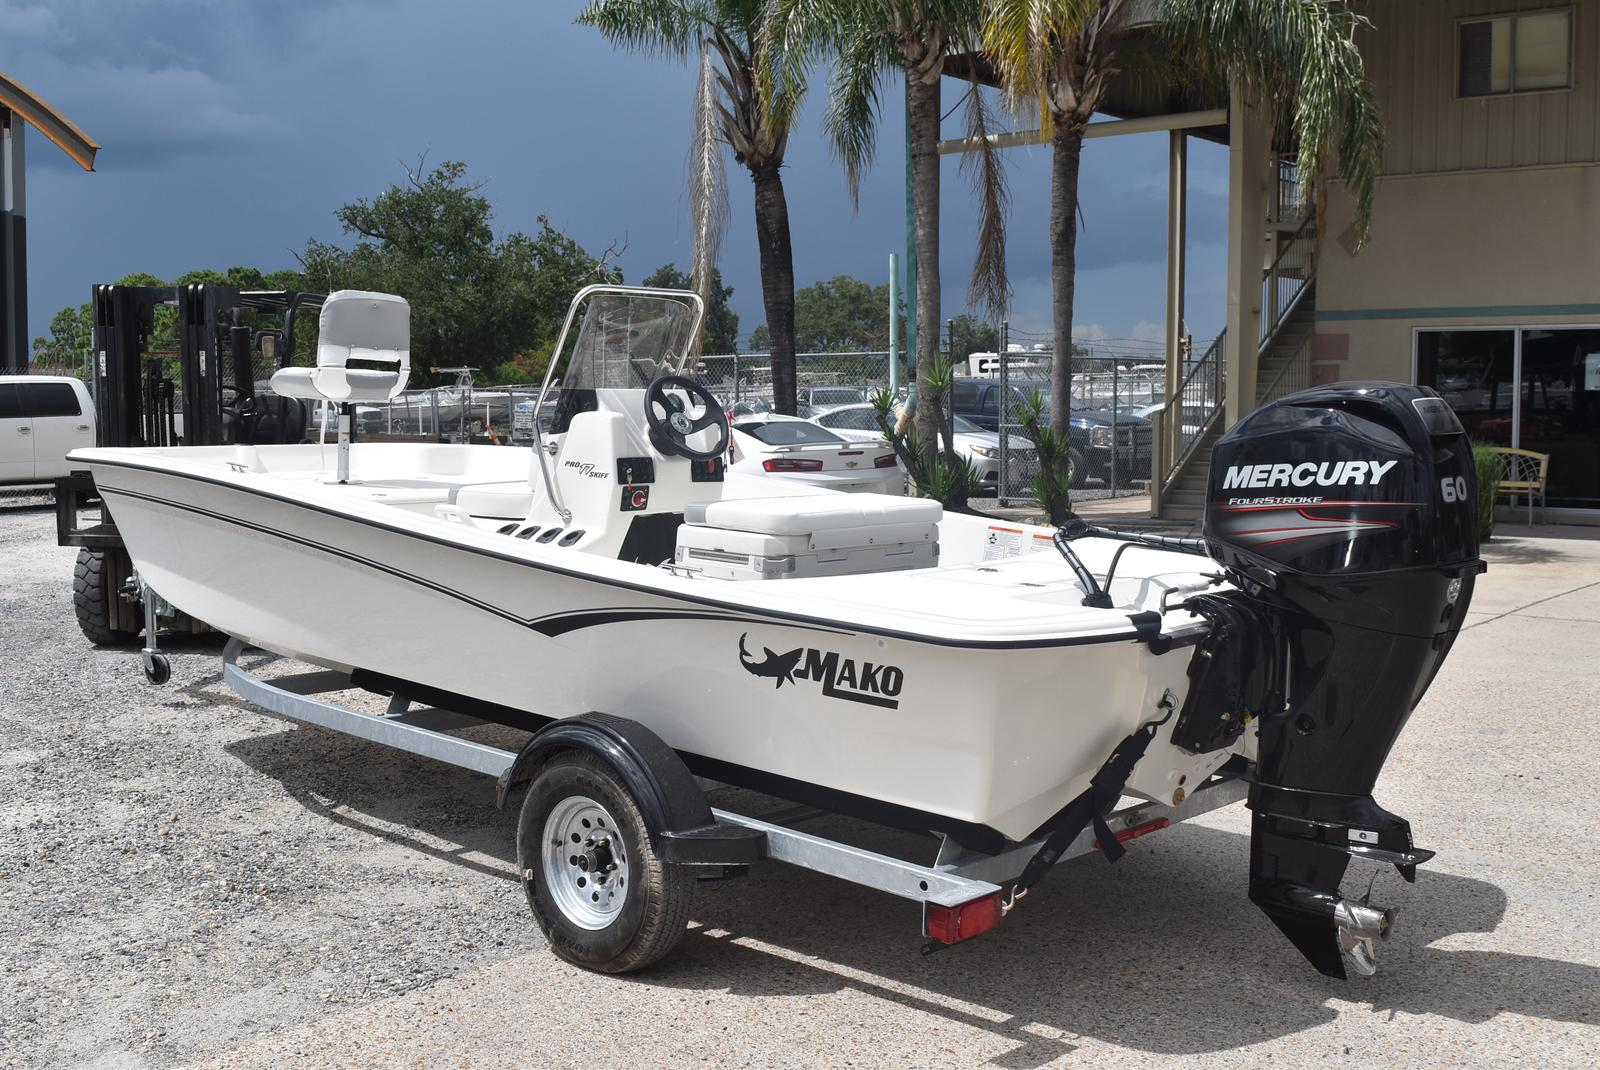 2020 Mako boat for sale, model of the boat is Pro Skiff 17, 75 ELPT & Image # 187 of 702